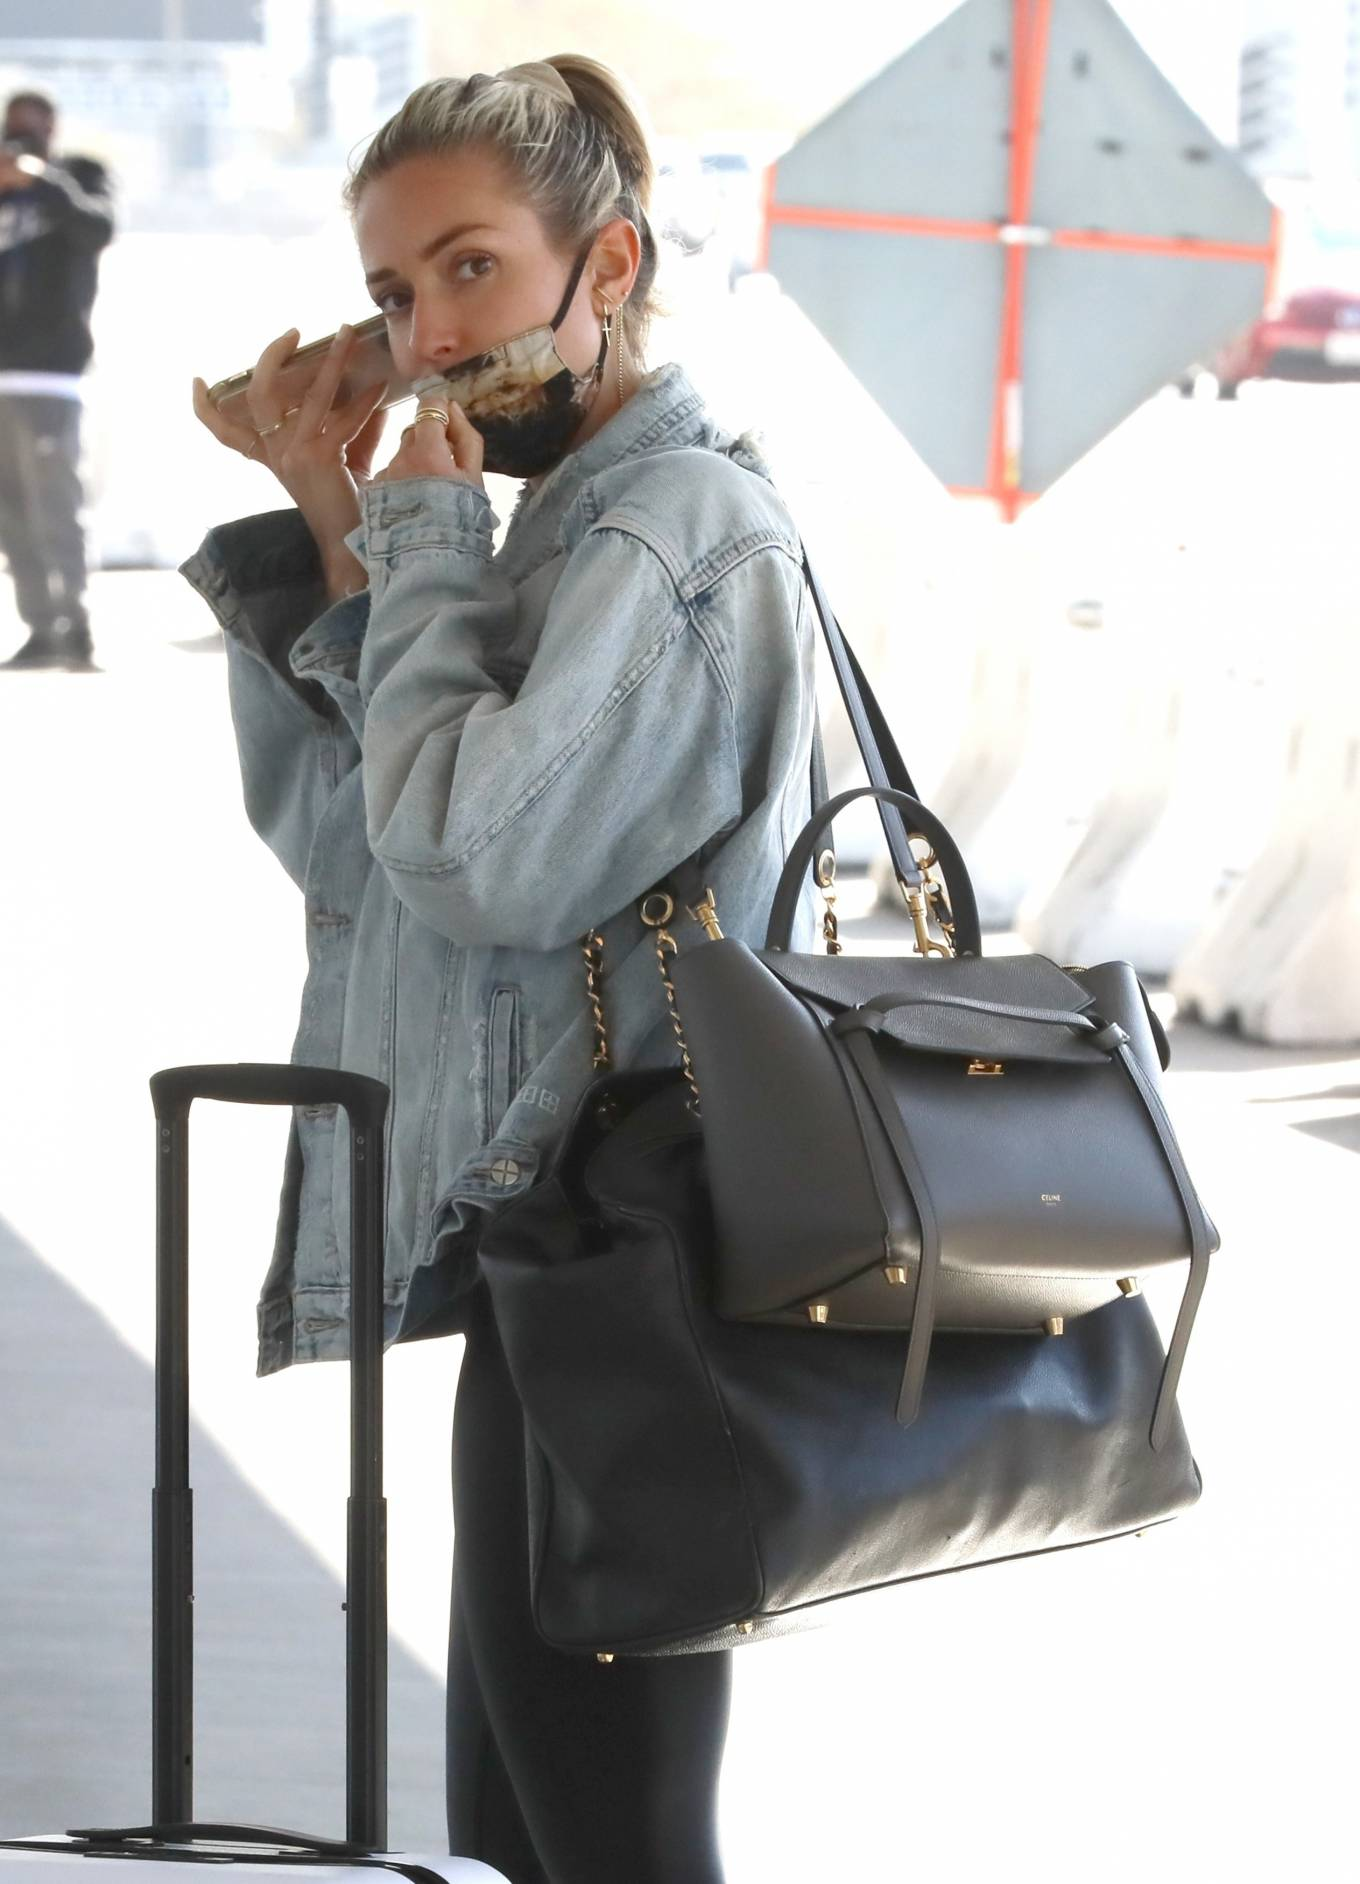 Kristin Cavallari - On phone call as she jets out of Los Angeles